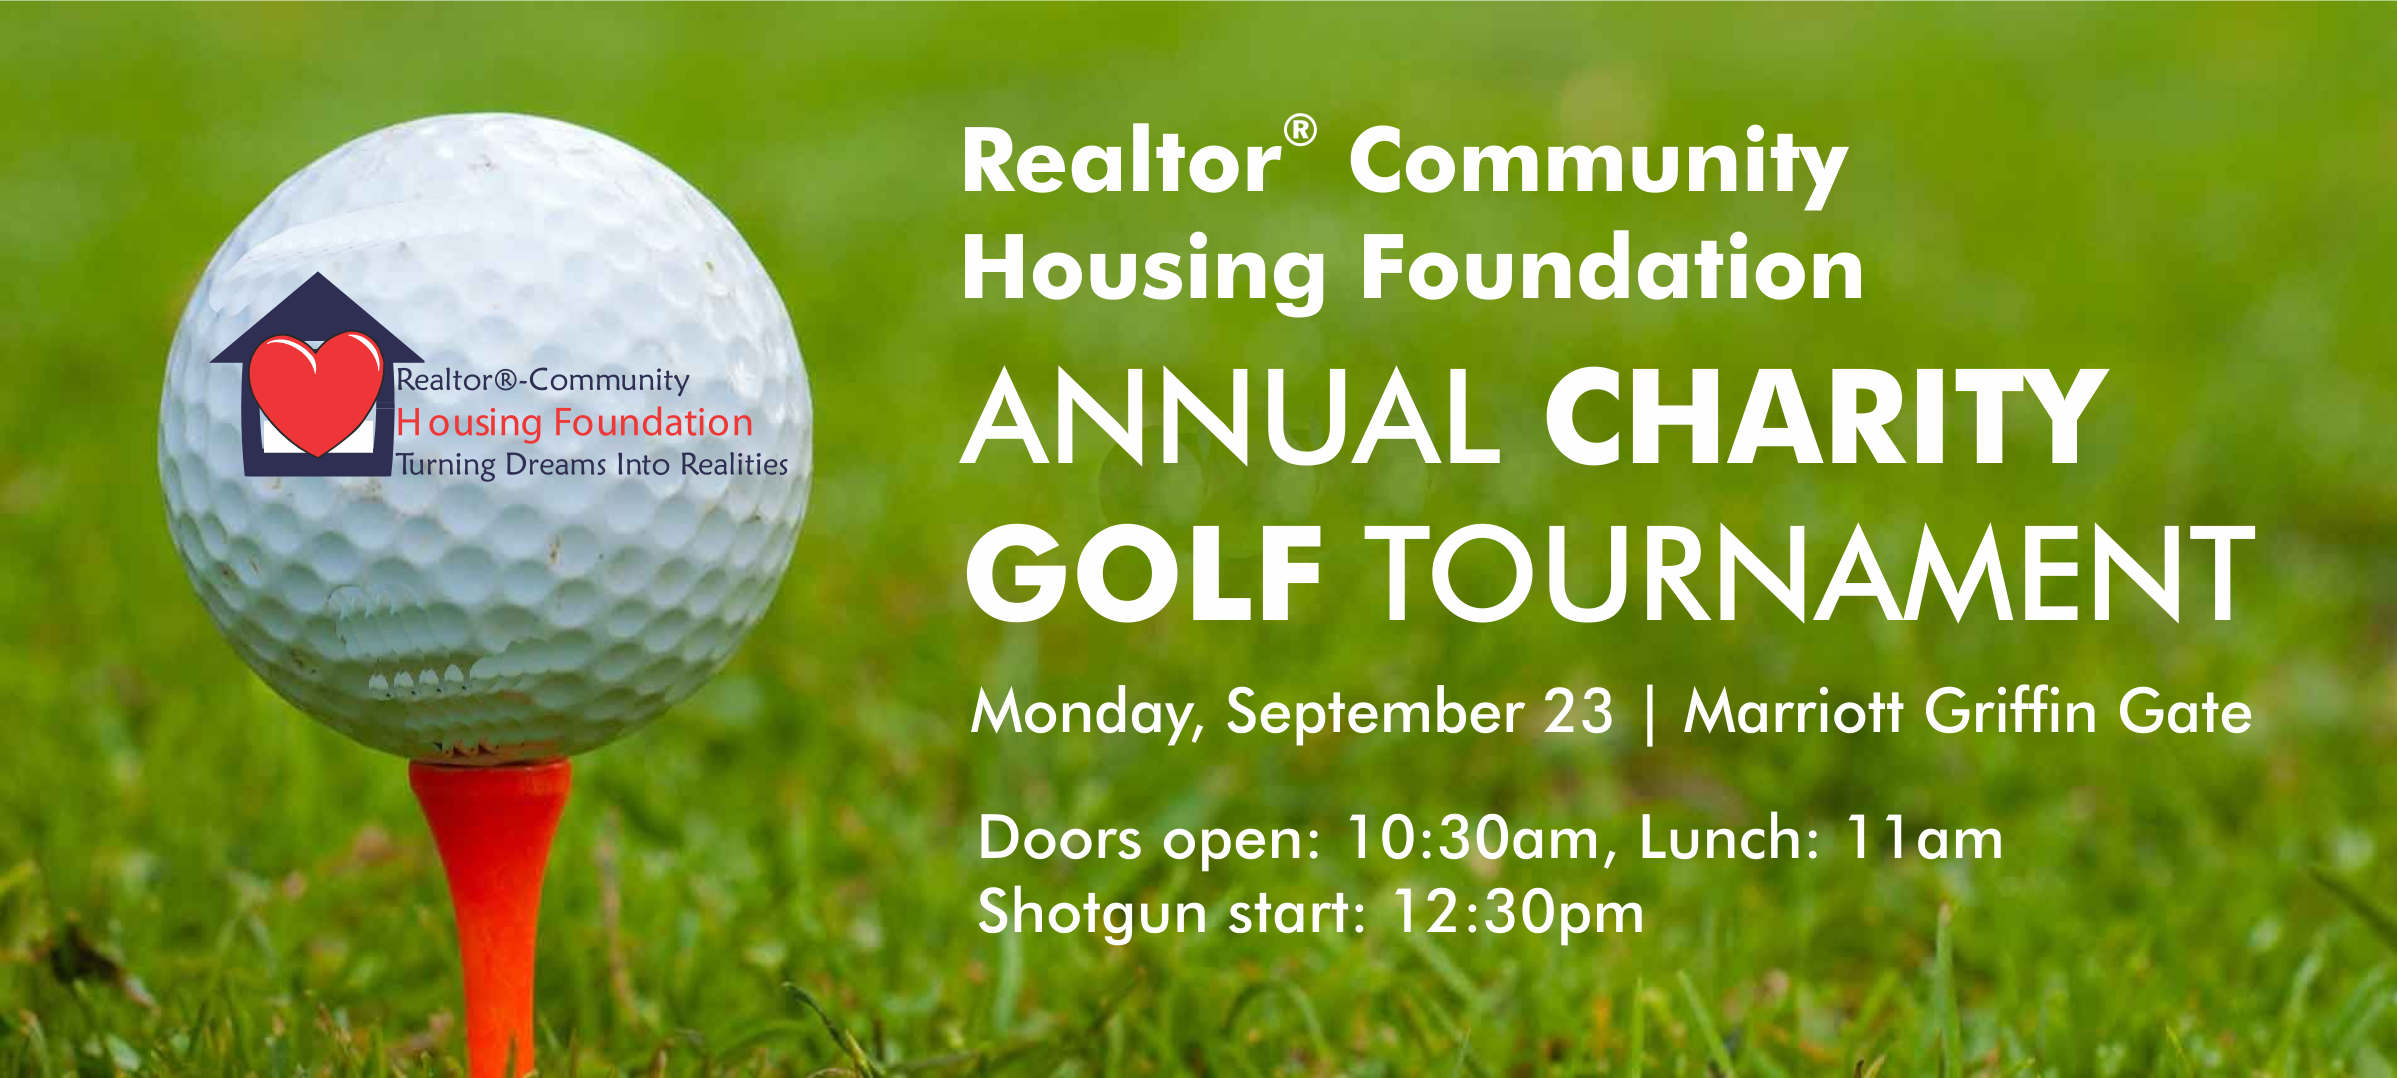 RCHF Golf Tournament